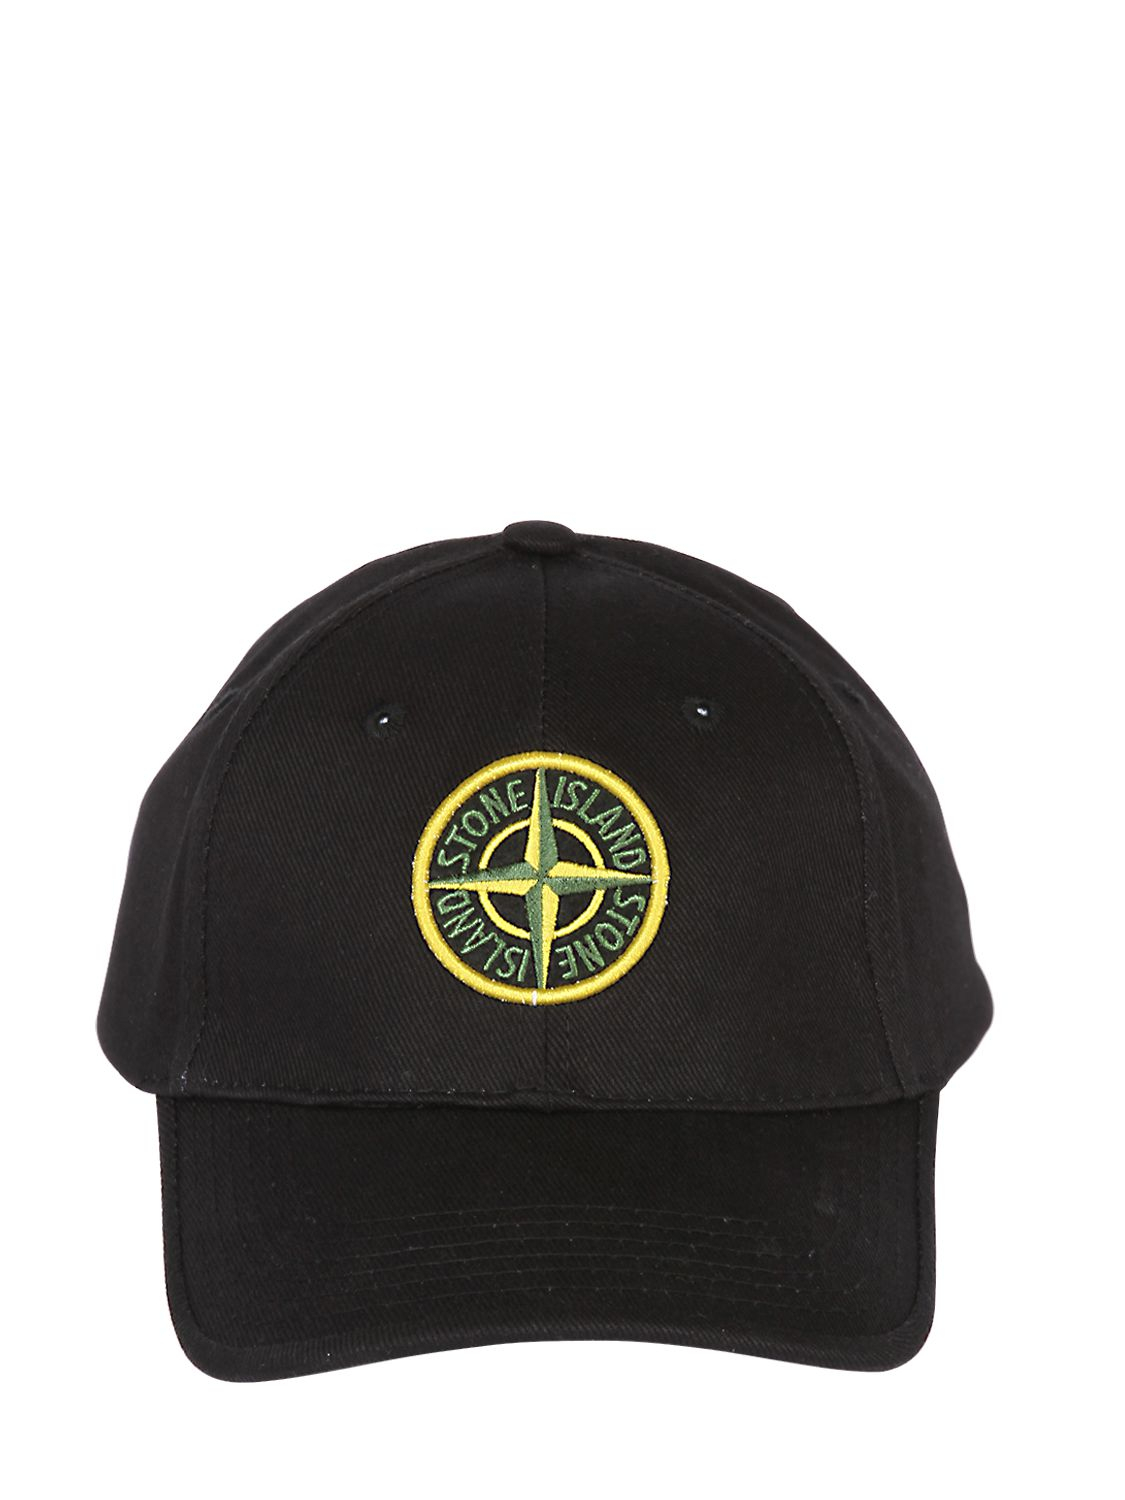 Lyst - Stone Island Cotton Canvas Baseball Hat in Black for Men a569779345